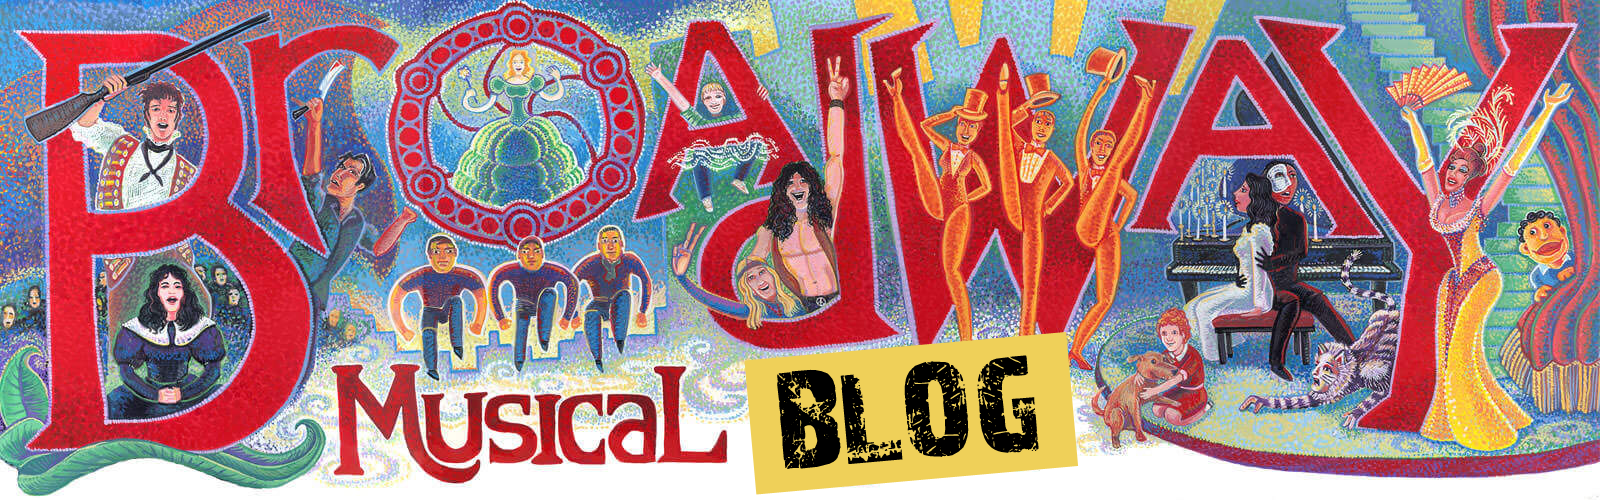 The Broadway Musical Blog - Musical theater news and gossip from the Great White Way